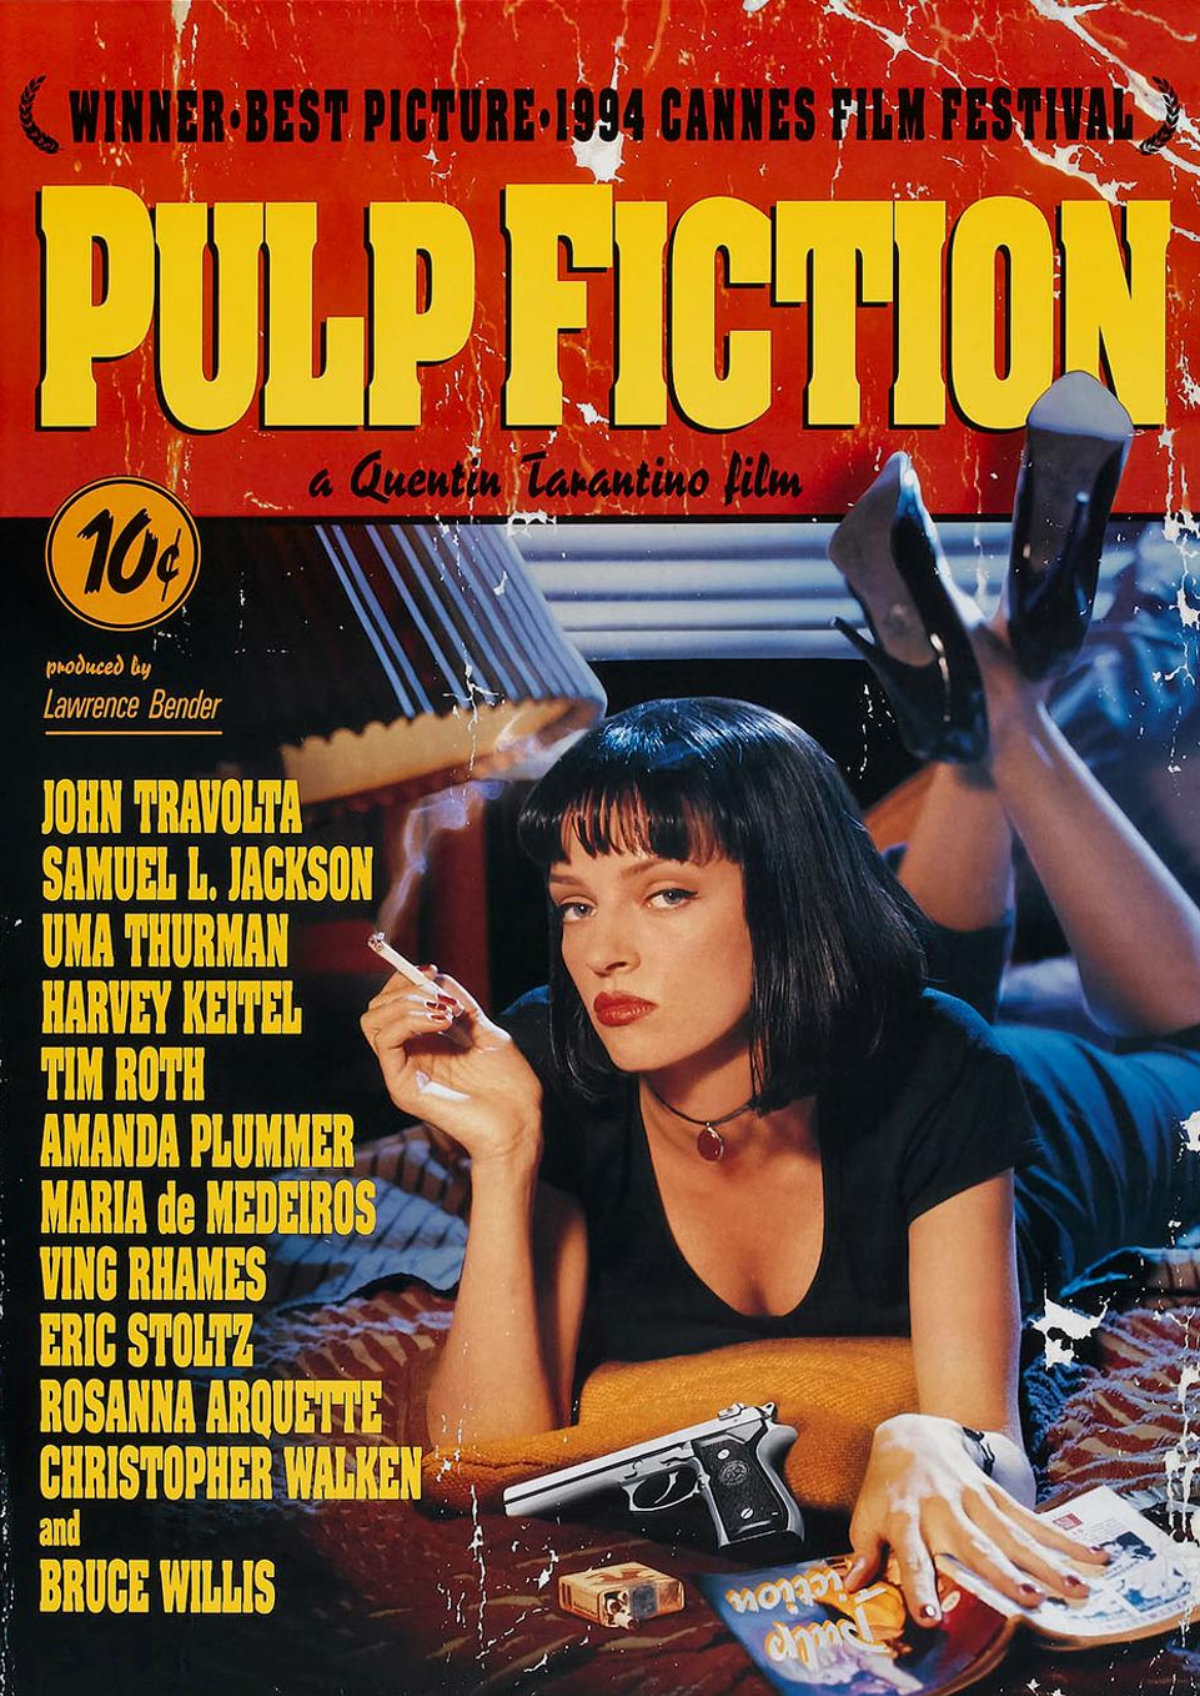 'Pulp Fiction' movie poster